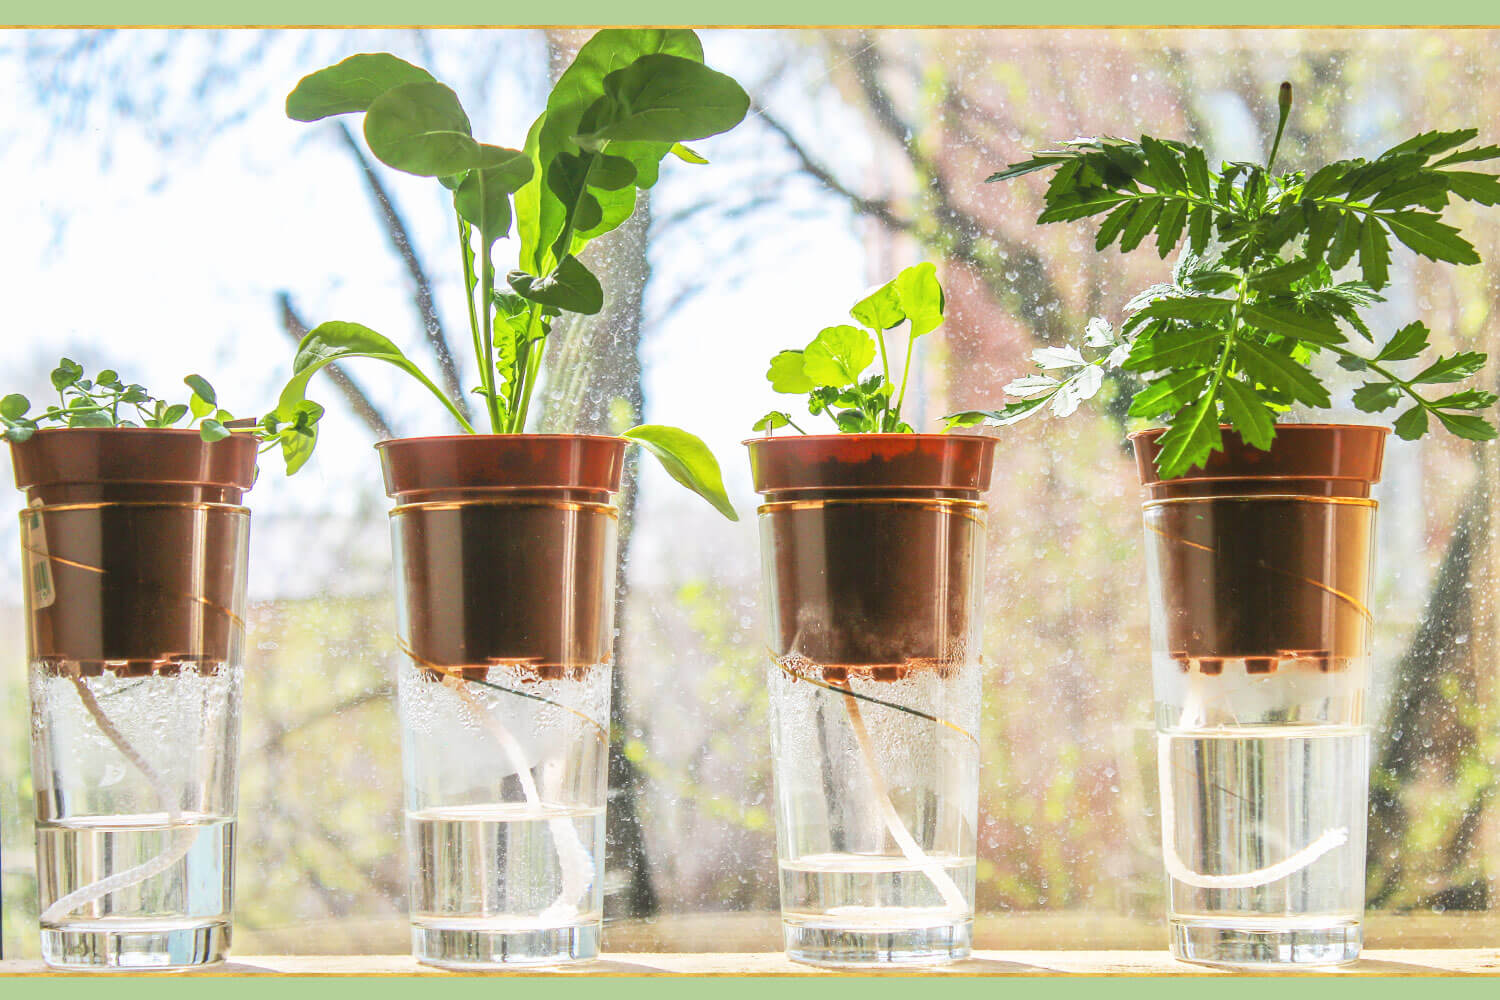 plants using watering drip system